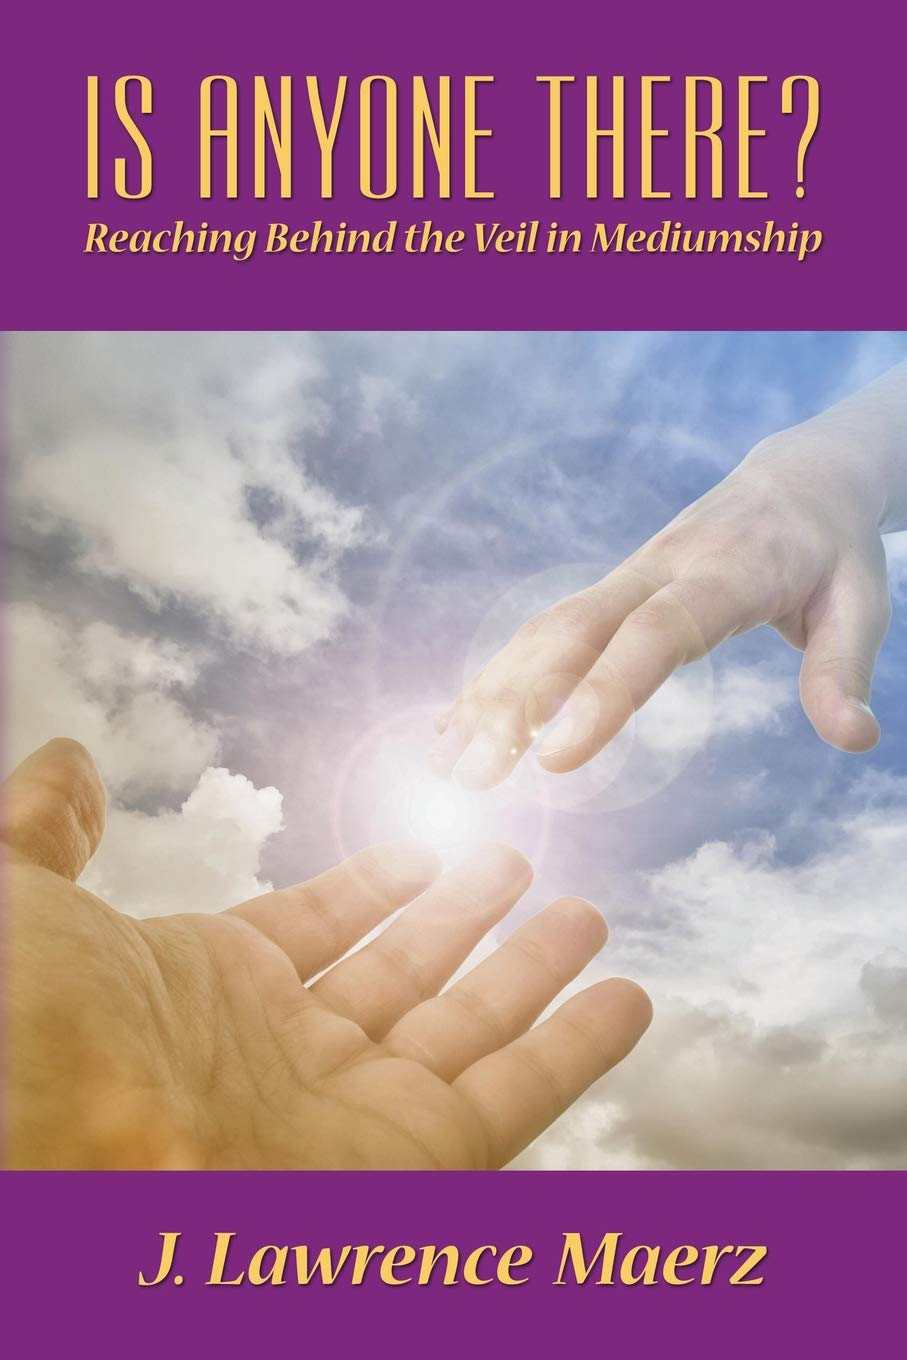 Is Anyone There?: Reaching Behind the Veil in Mediumship pdf